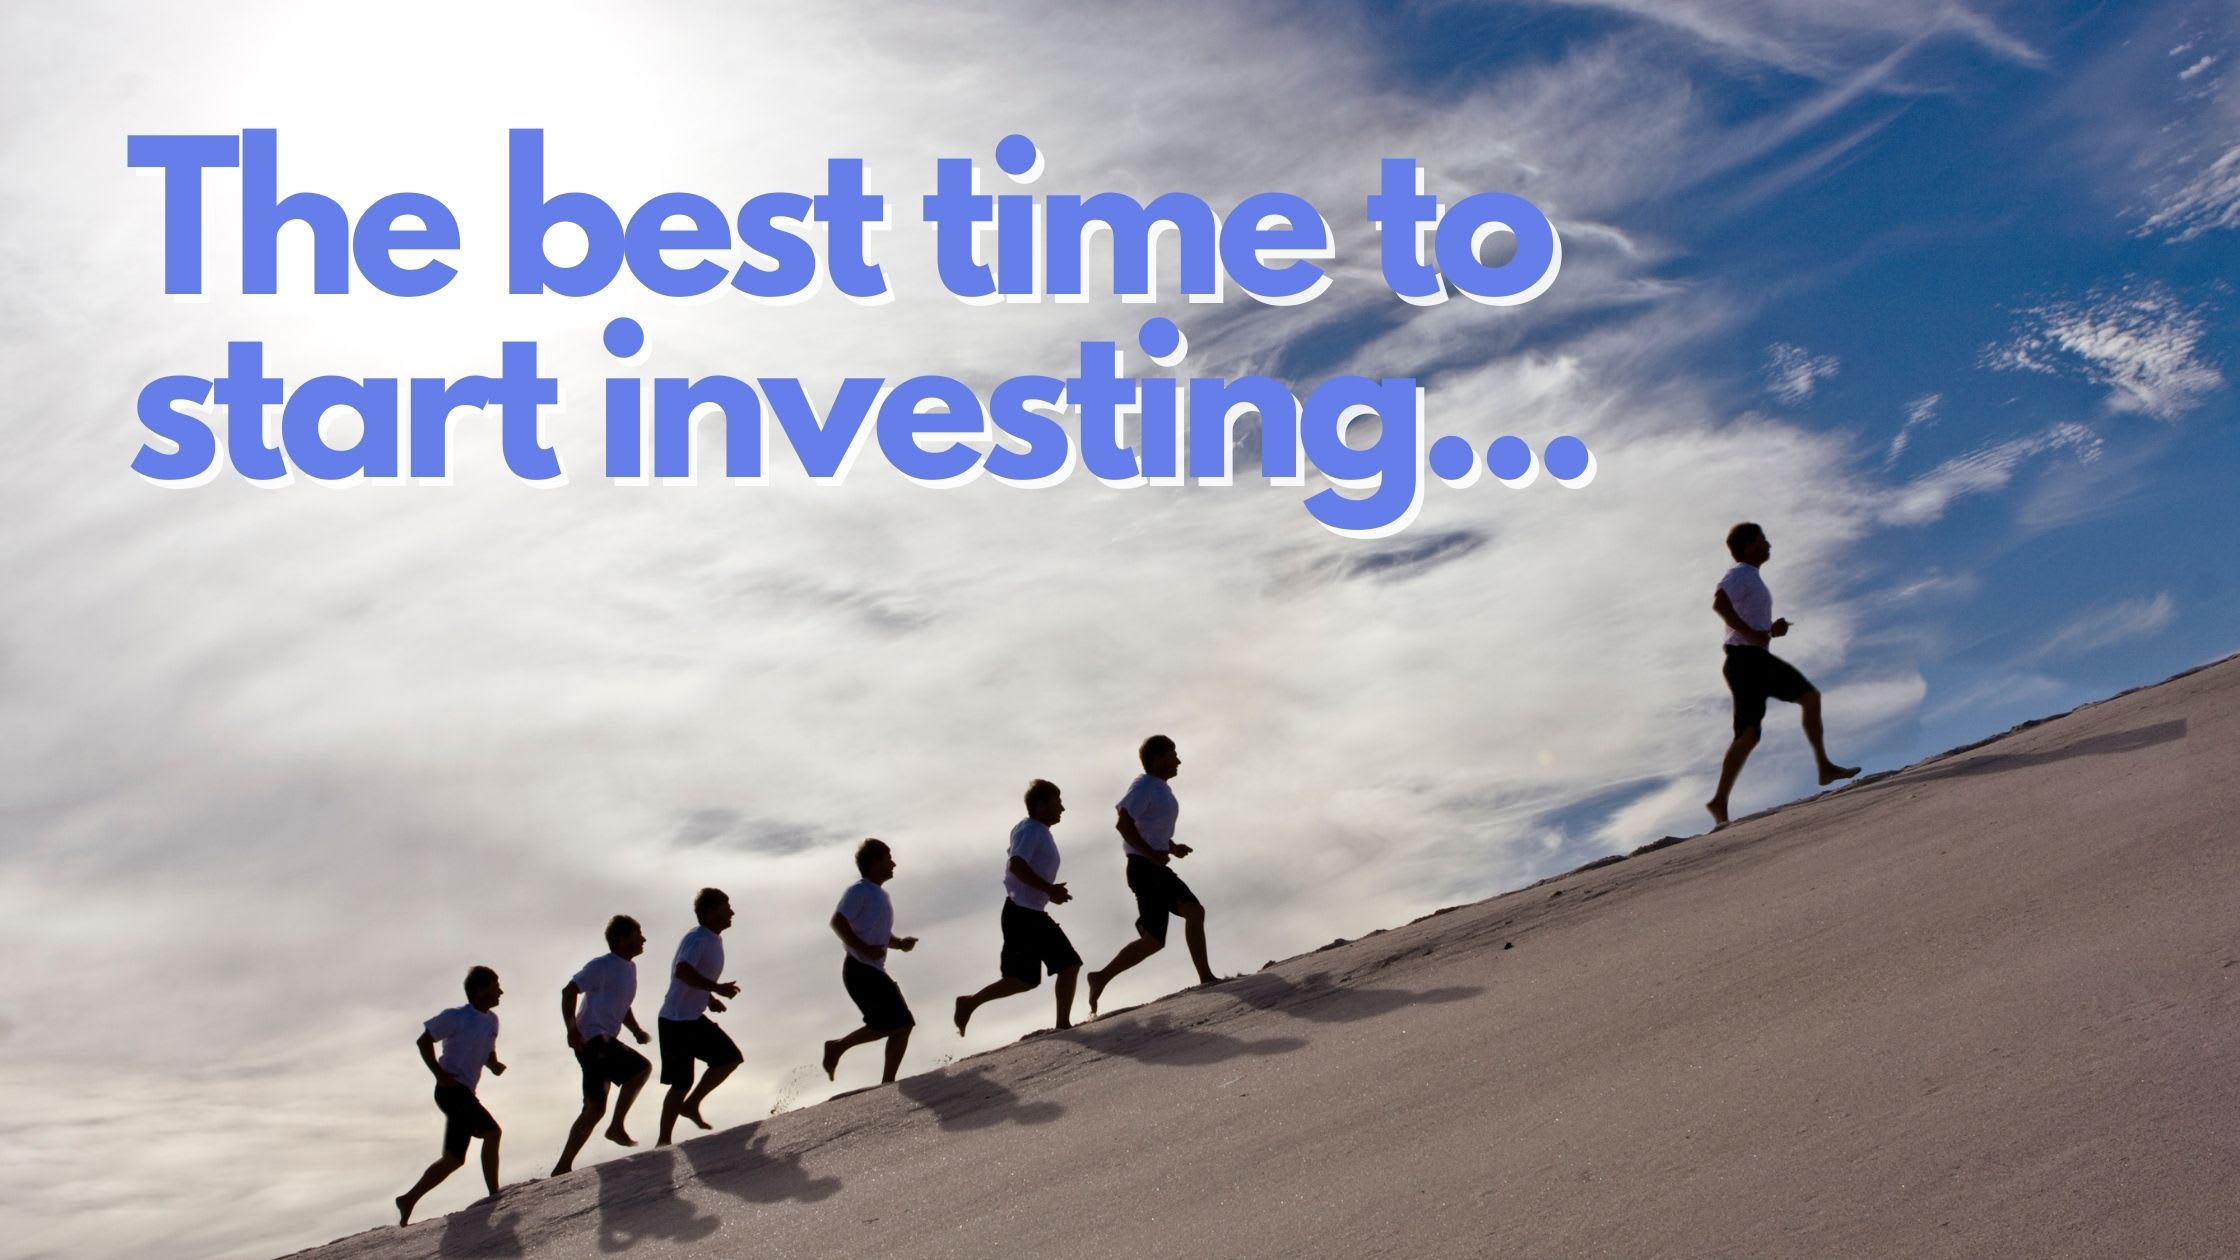 The best time to start investing...